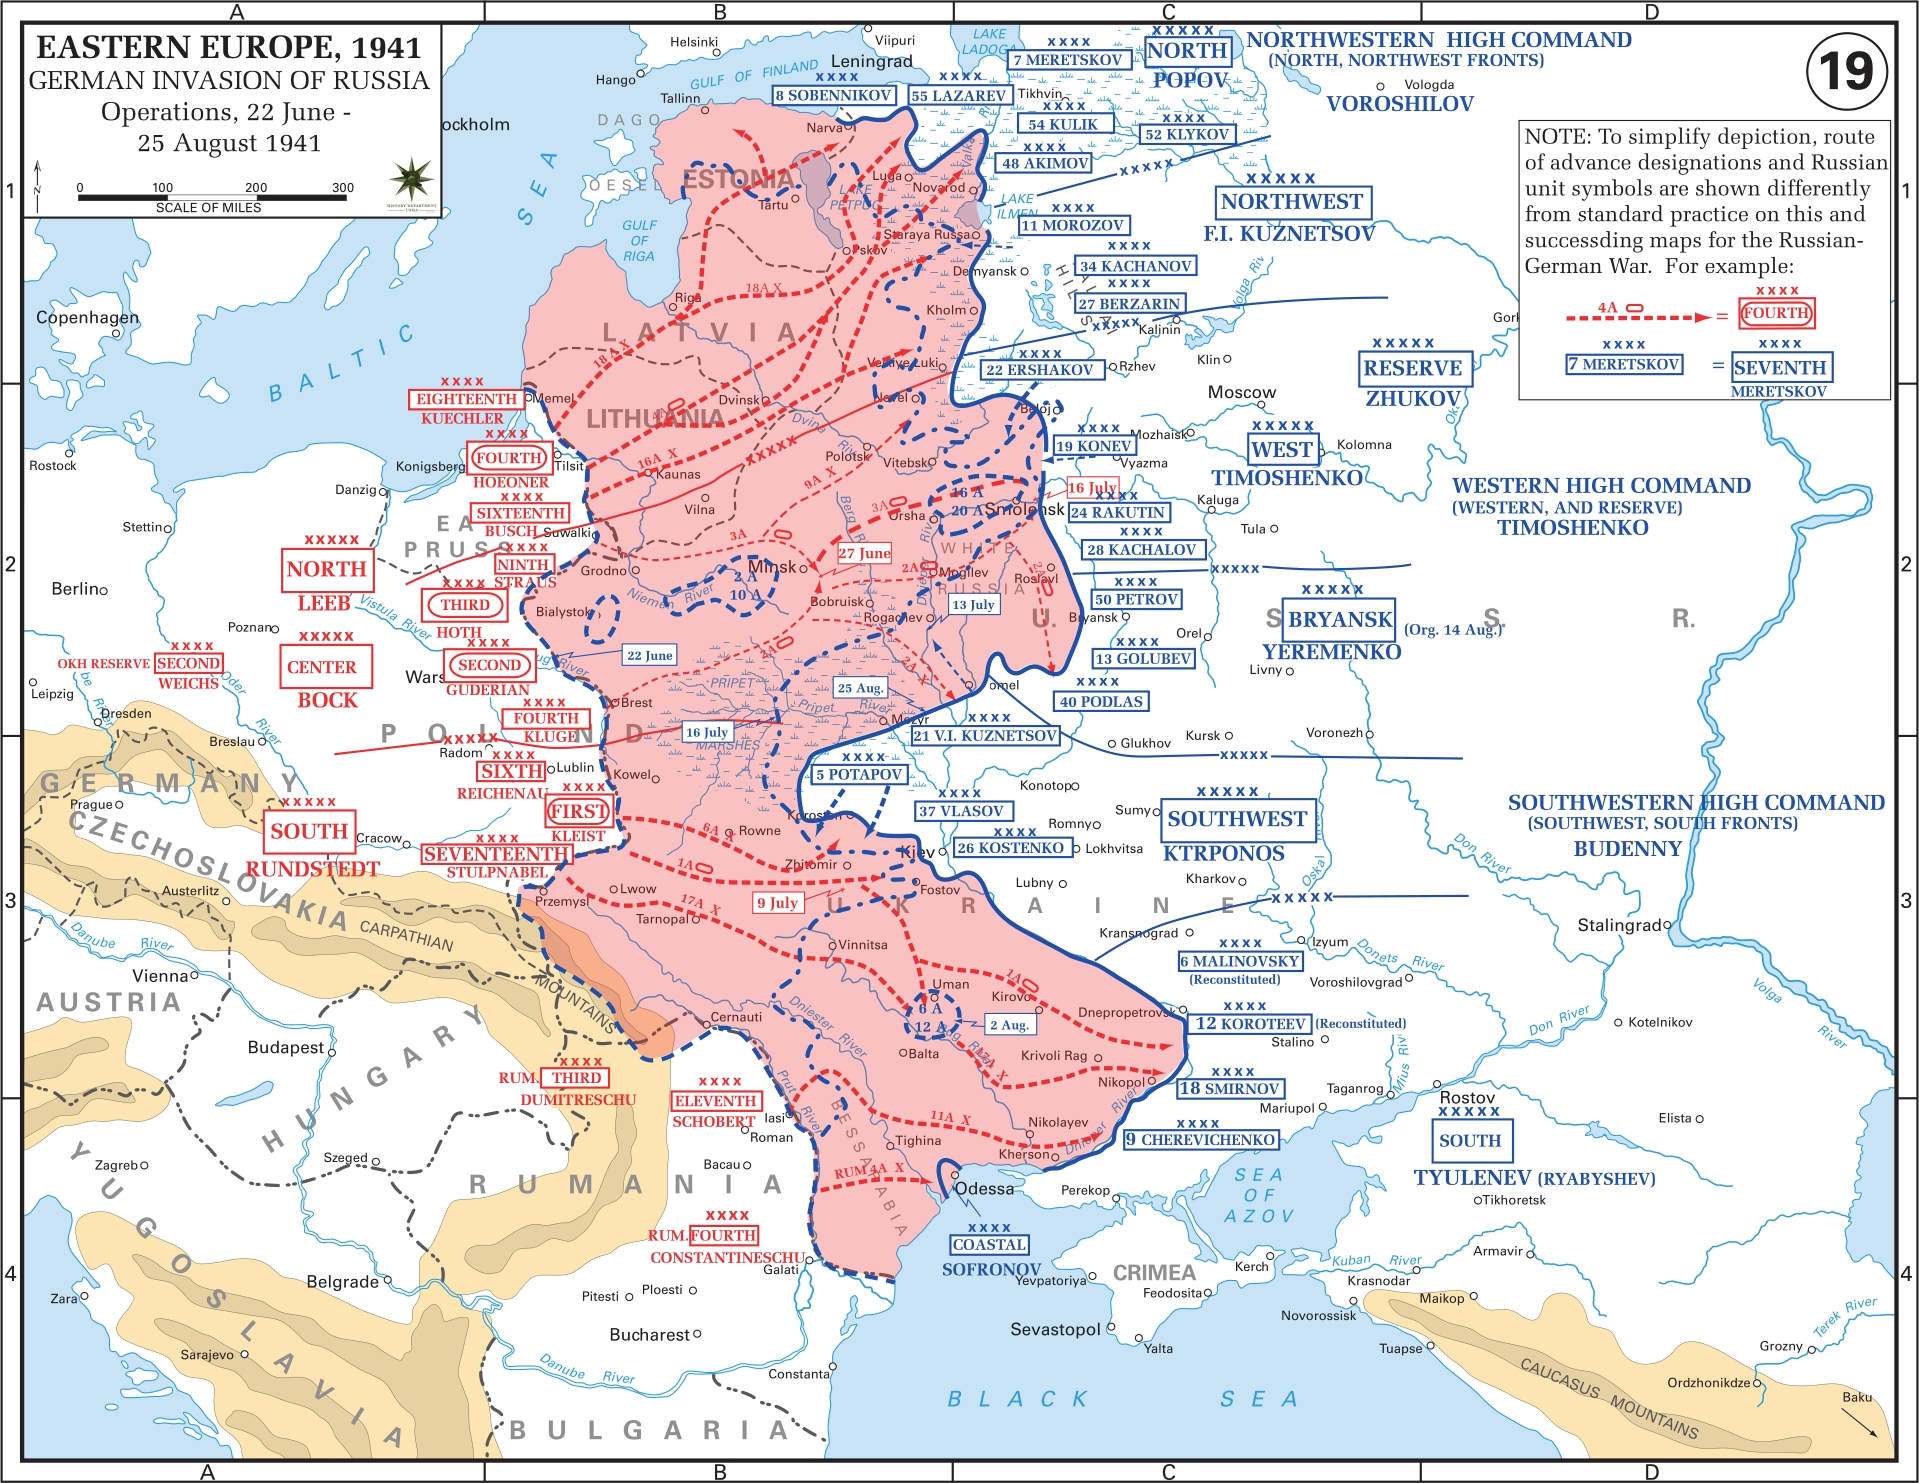 Eastern Front Maps Of World War Ii - Inflab - Medium for Germany Map Of Ww2